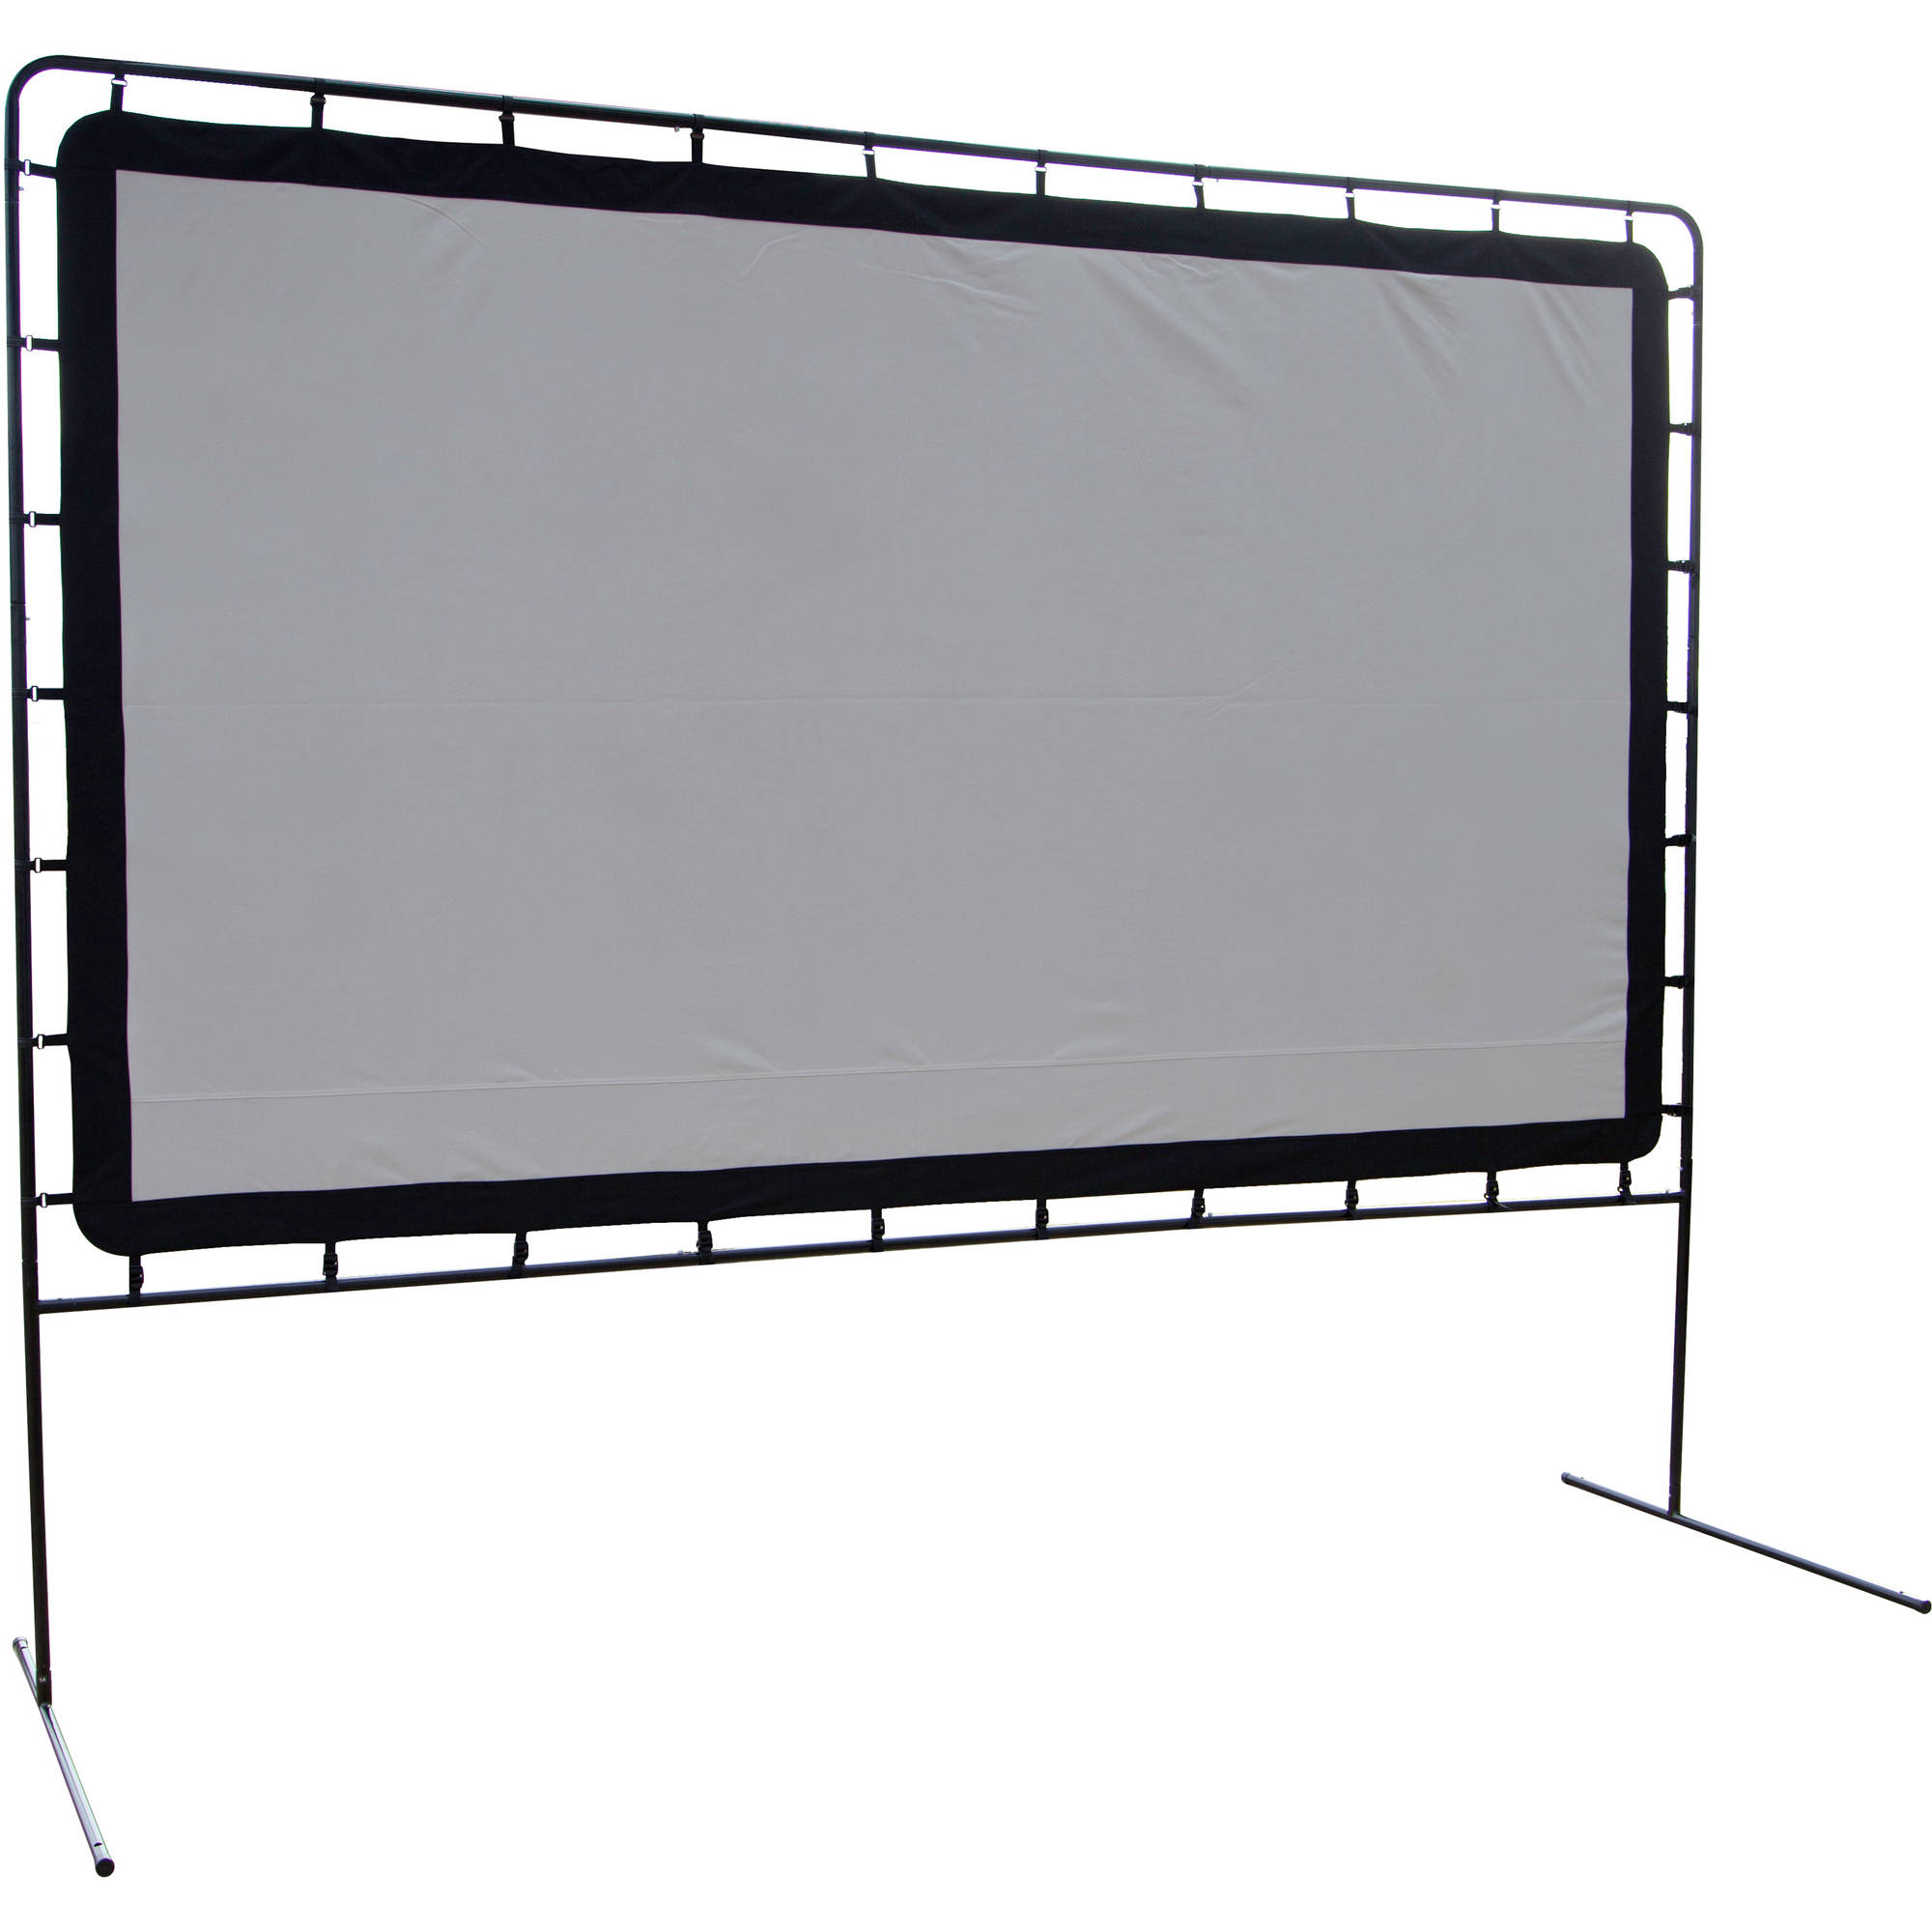 "Camp Chef High Resolution Outdoor Movie Screen, 144"" by Camp Chef"